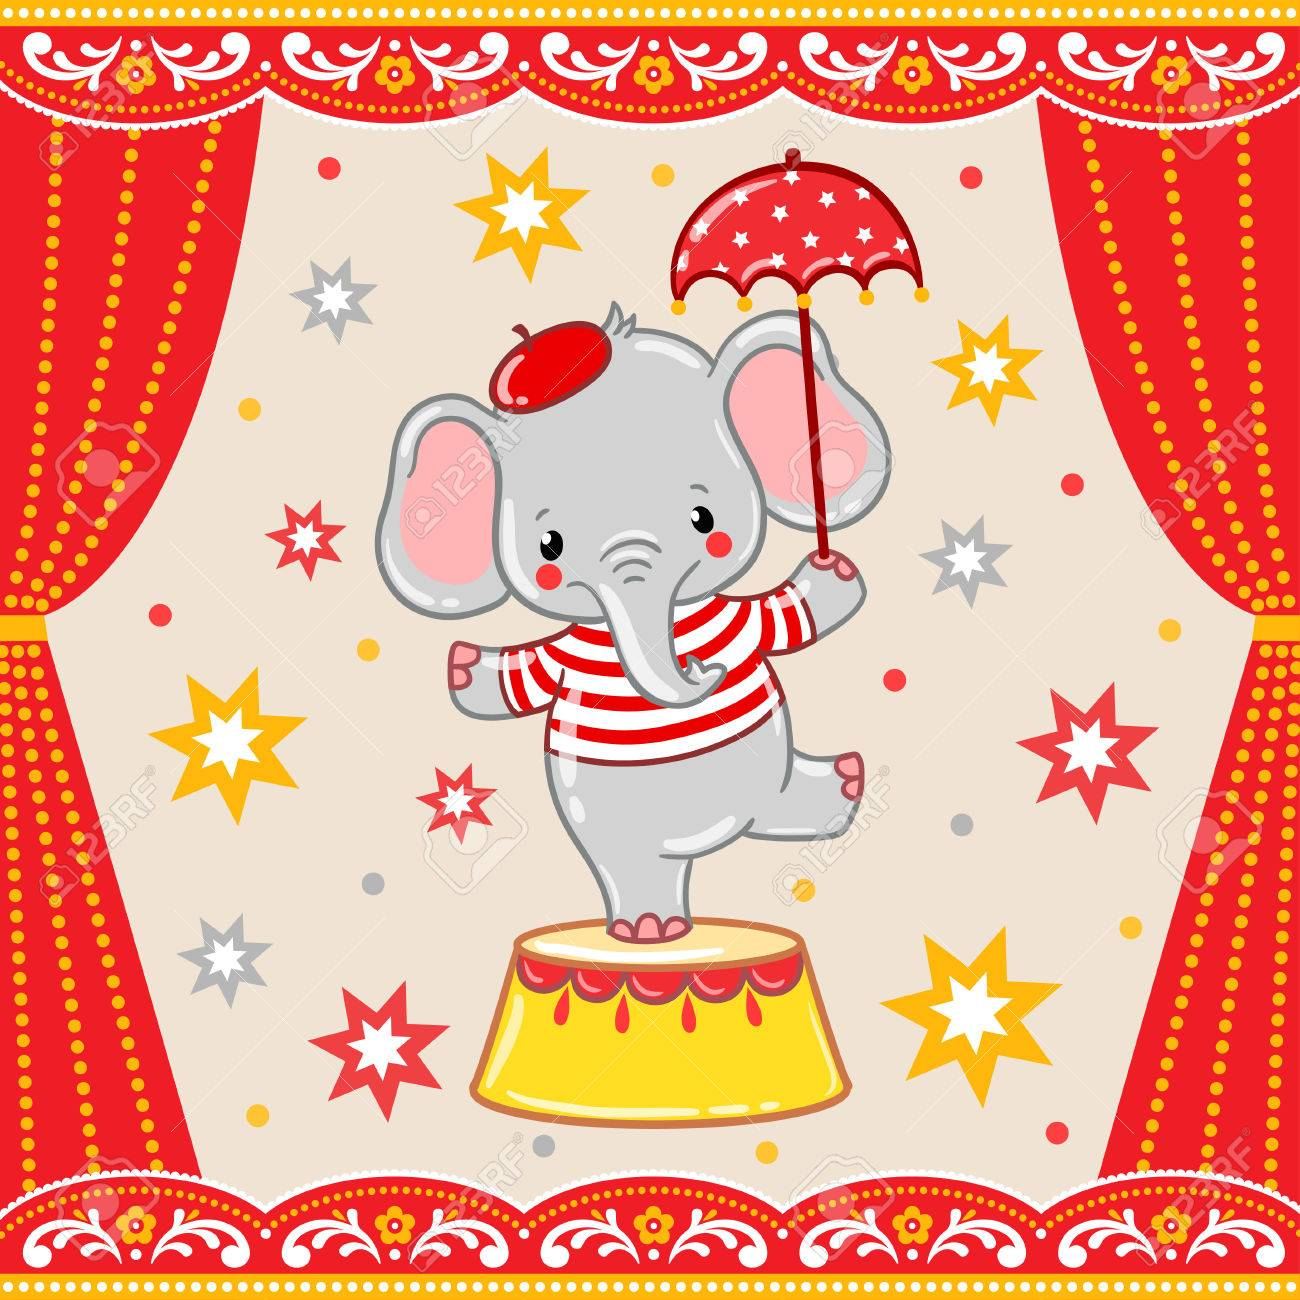 Circus happy birthday card design. Children vector illustration of a cute Circus elephant standing on a circus tub. - 48498153